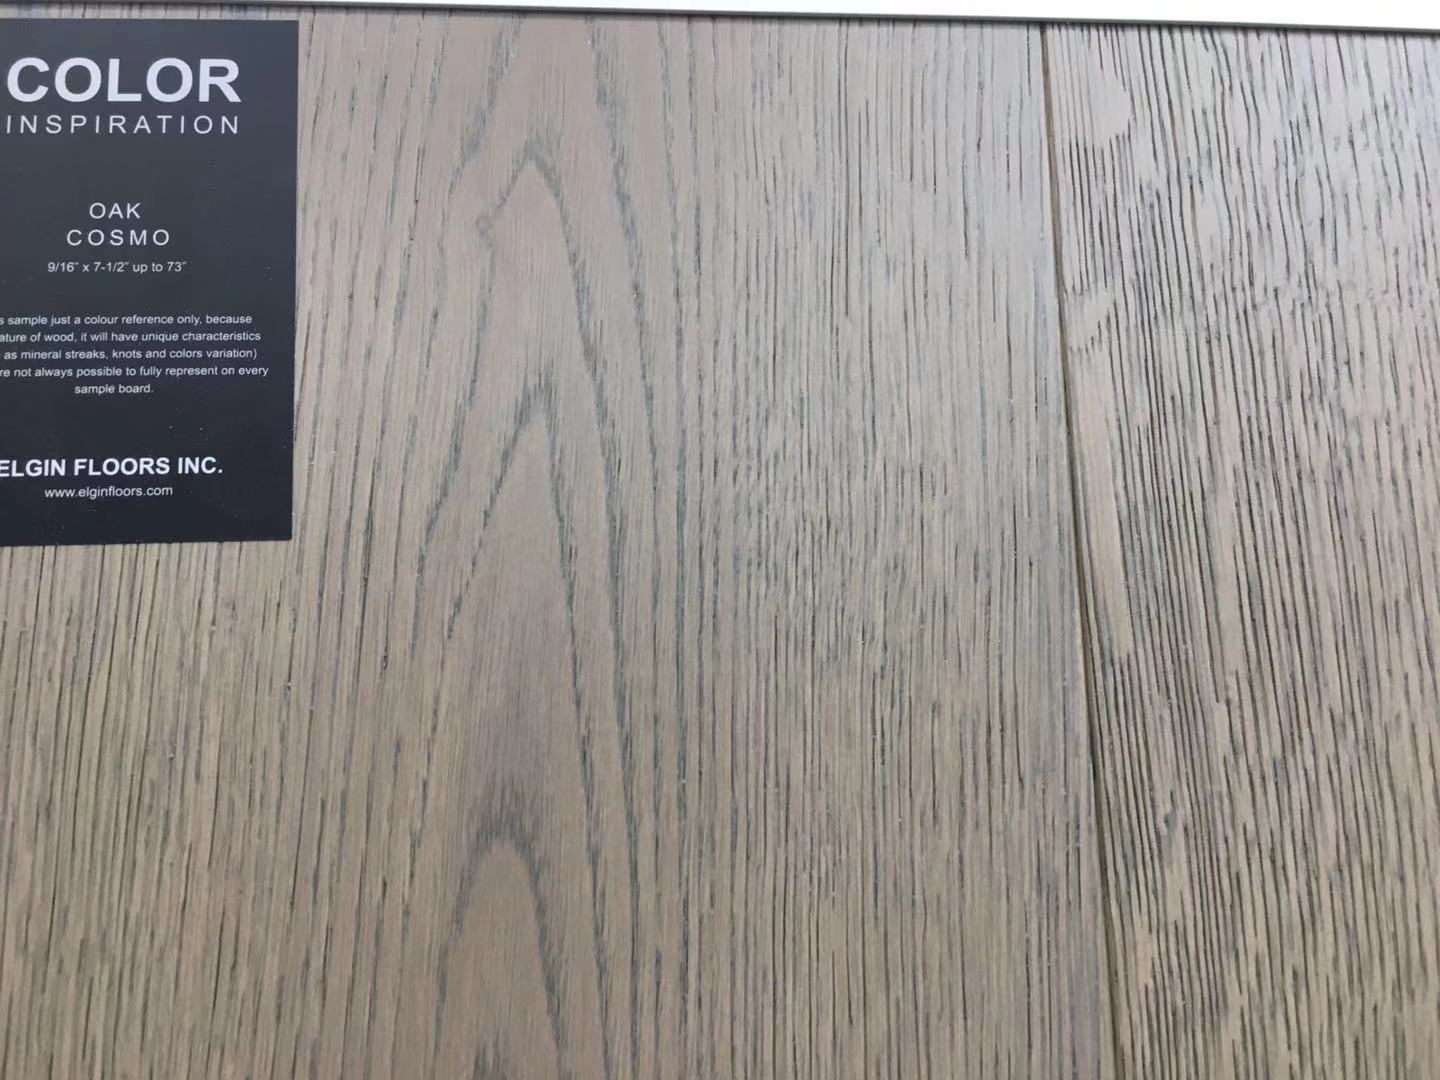 SPX ORDER 1-2DAYS ENGINEERED HARDWOOD OAK COSMO $4.26/SF 23.33SF/BOX $99.49/BOX - Home Idol Home Improvement Outlet